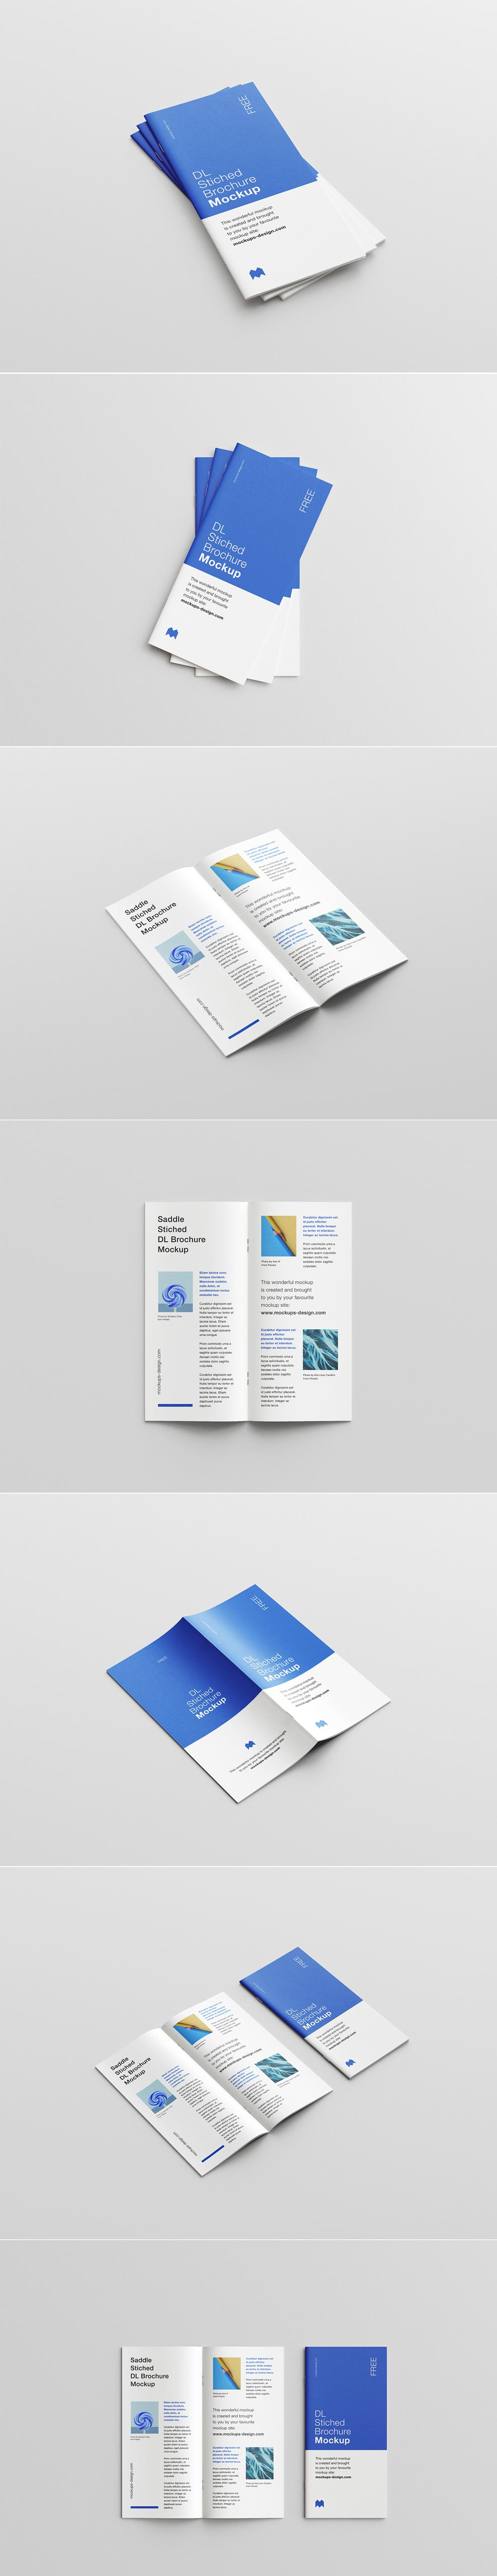 Free Stiched Brochure Mockup